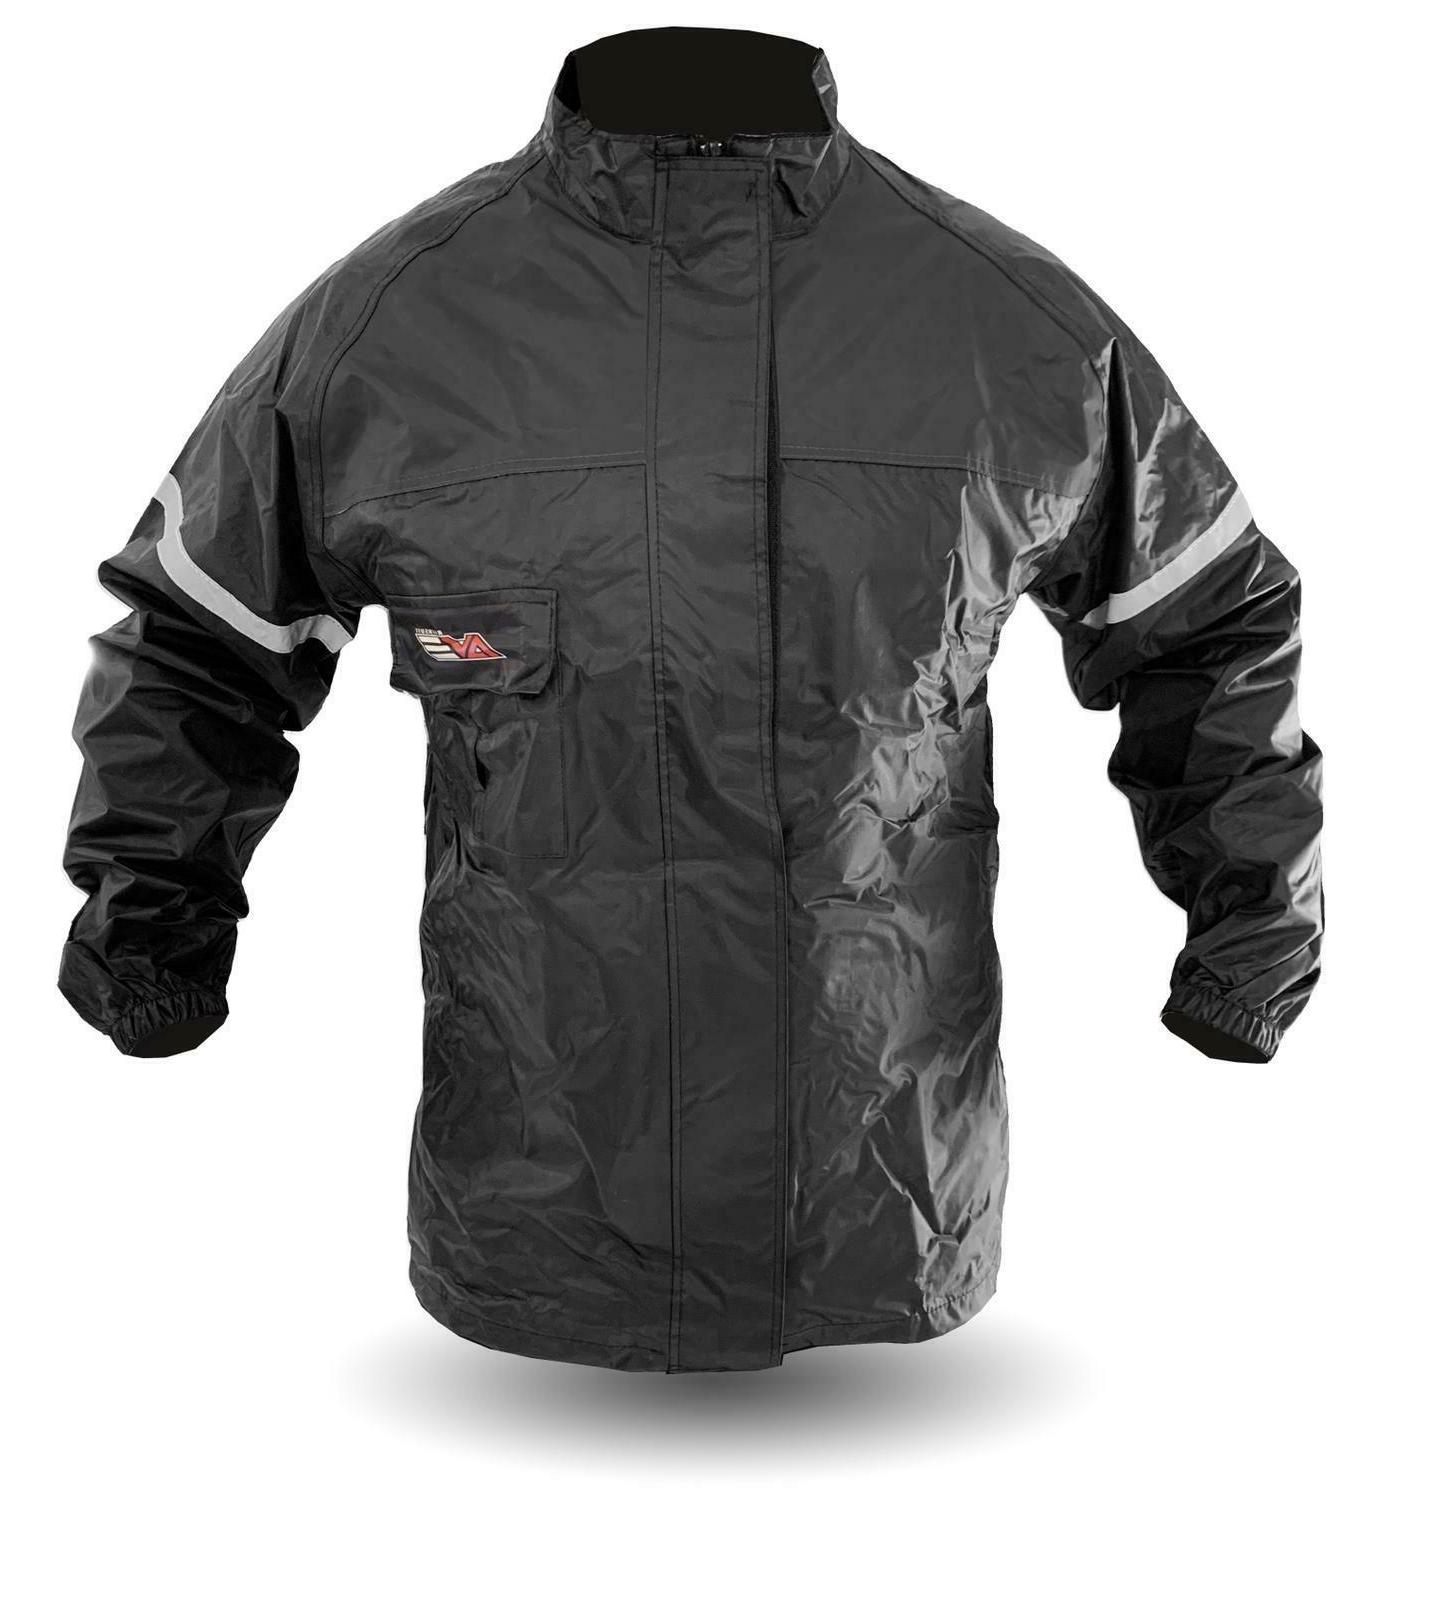 3 Piece AVE Rain Suit - Stay Dry Motorcycle